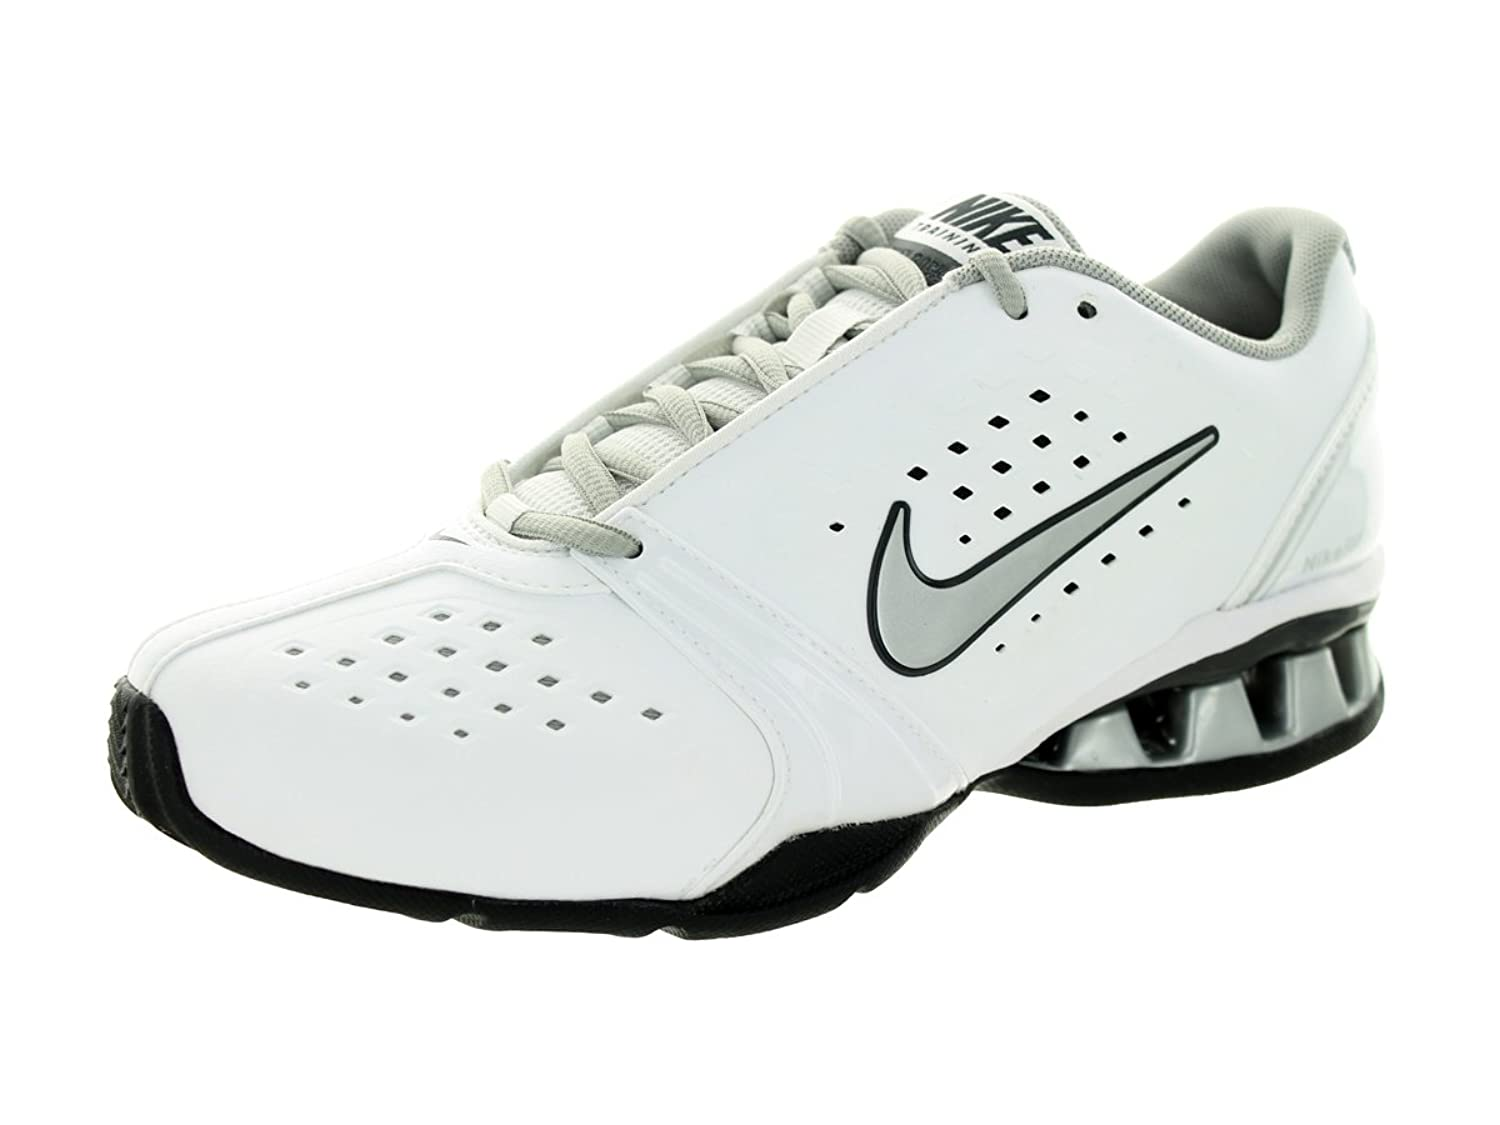 Nike Women'S Reax Rockstar Training Shoe -